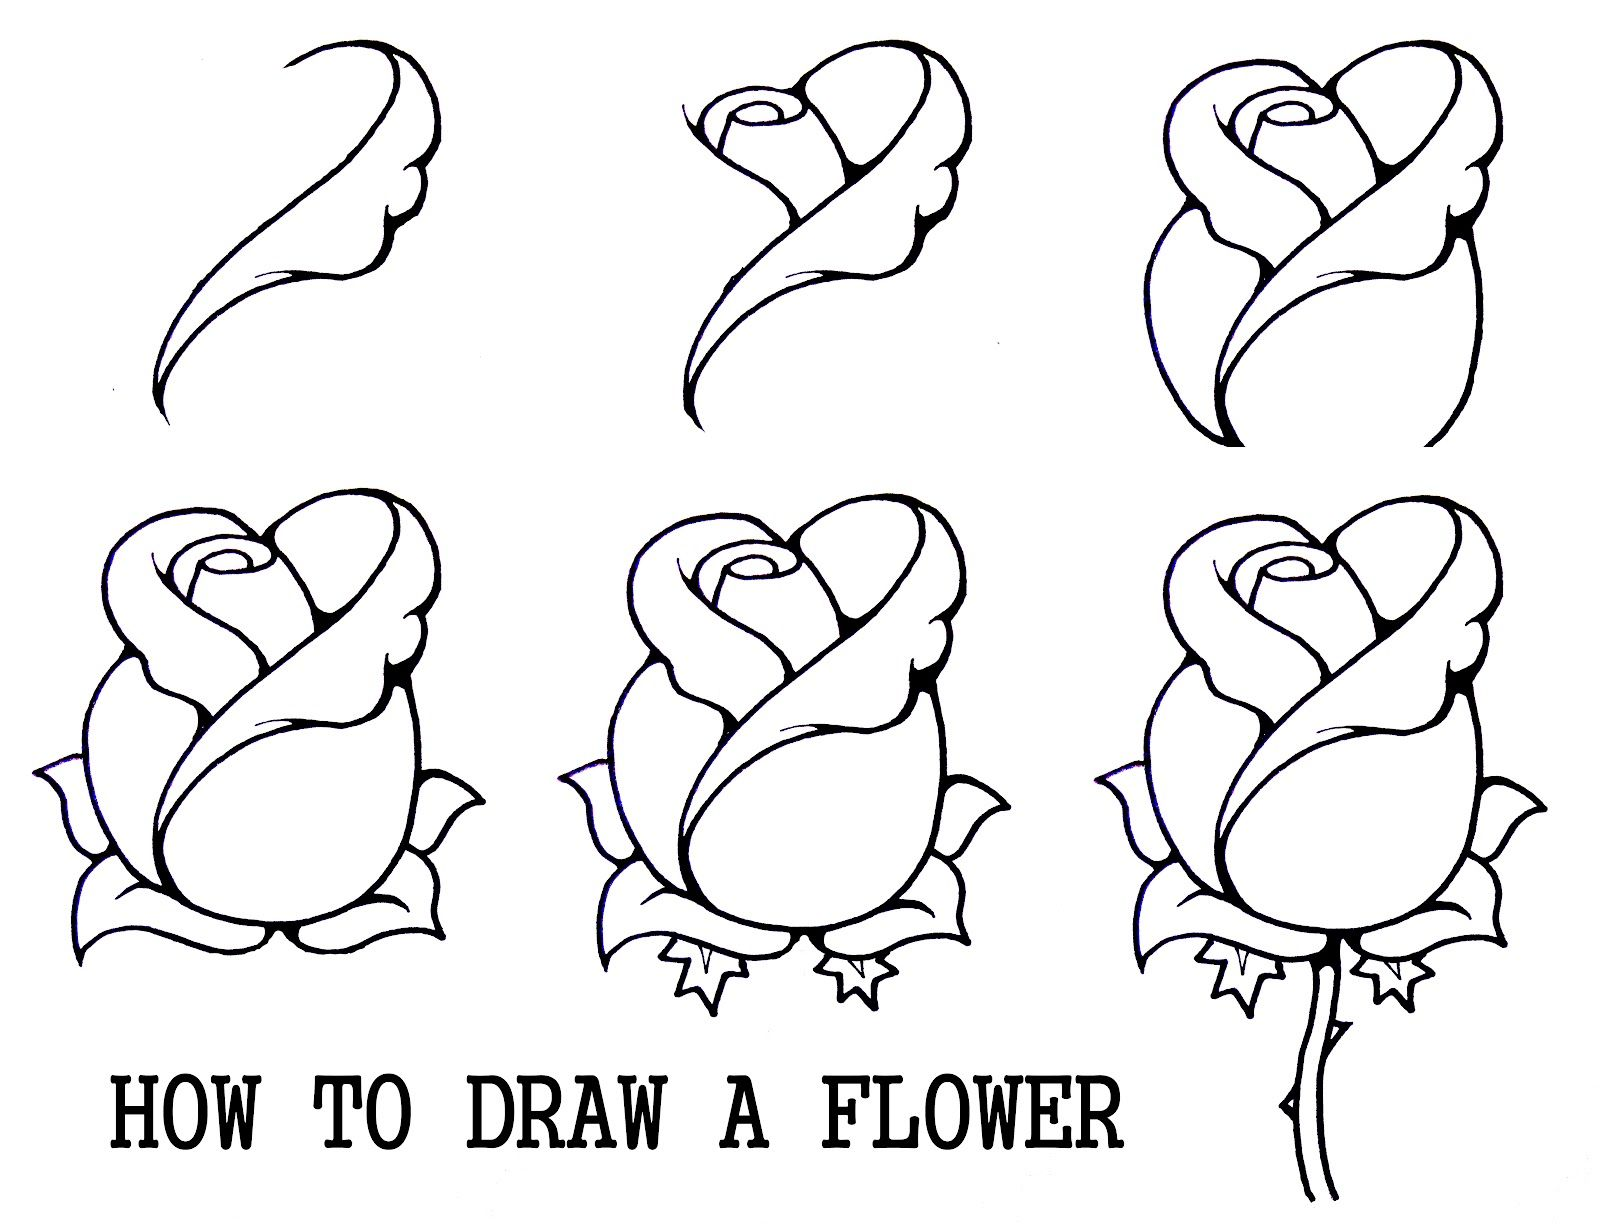 draw flowers daryl hobson artwork how to draw a flower